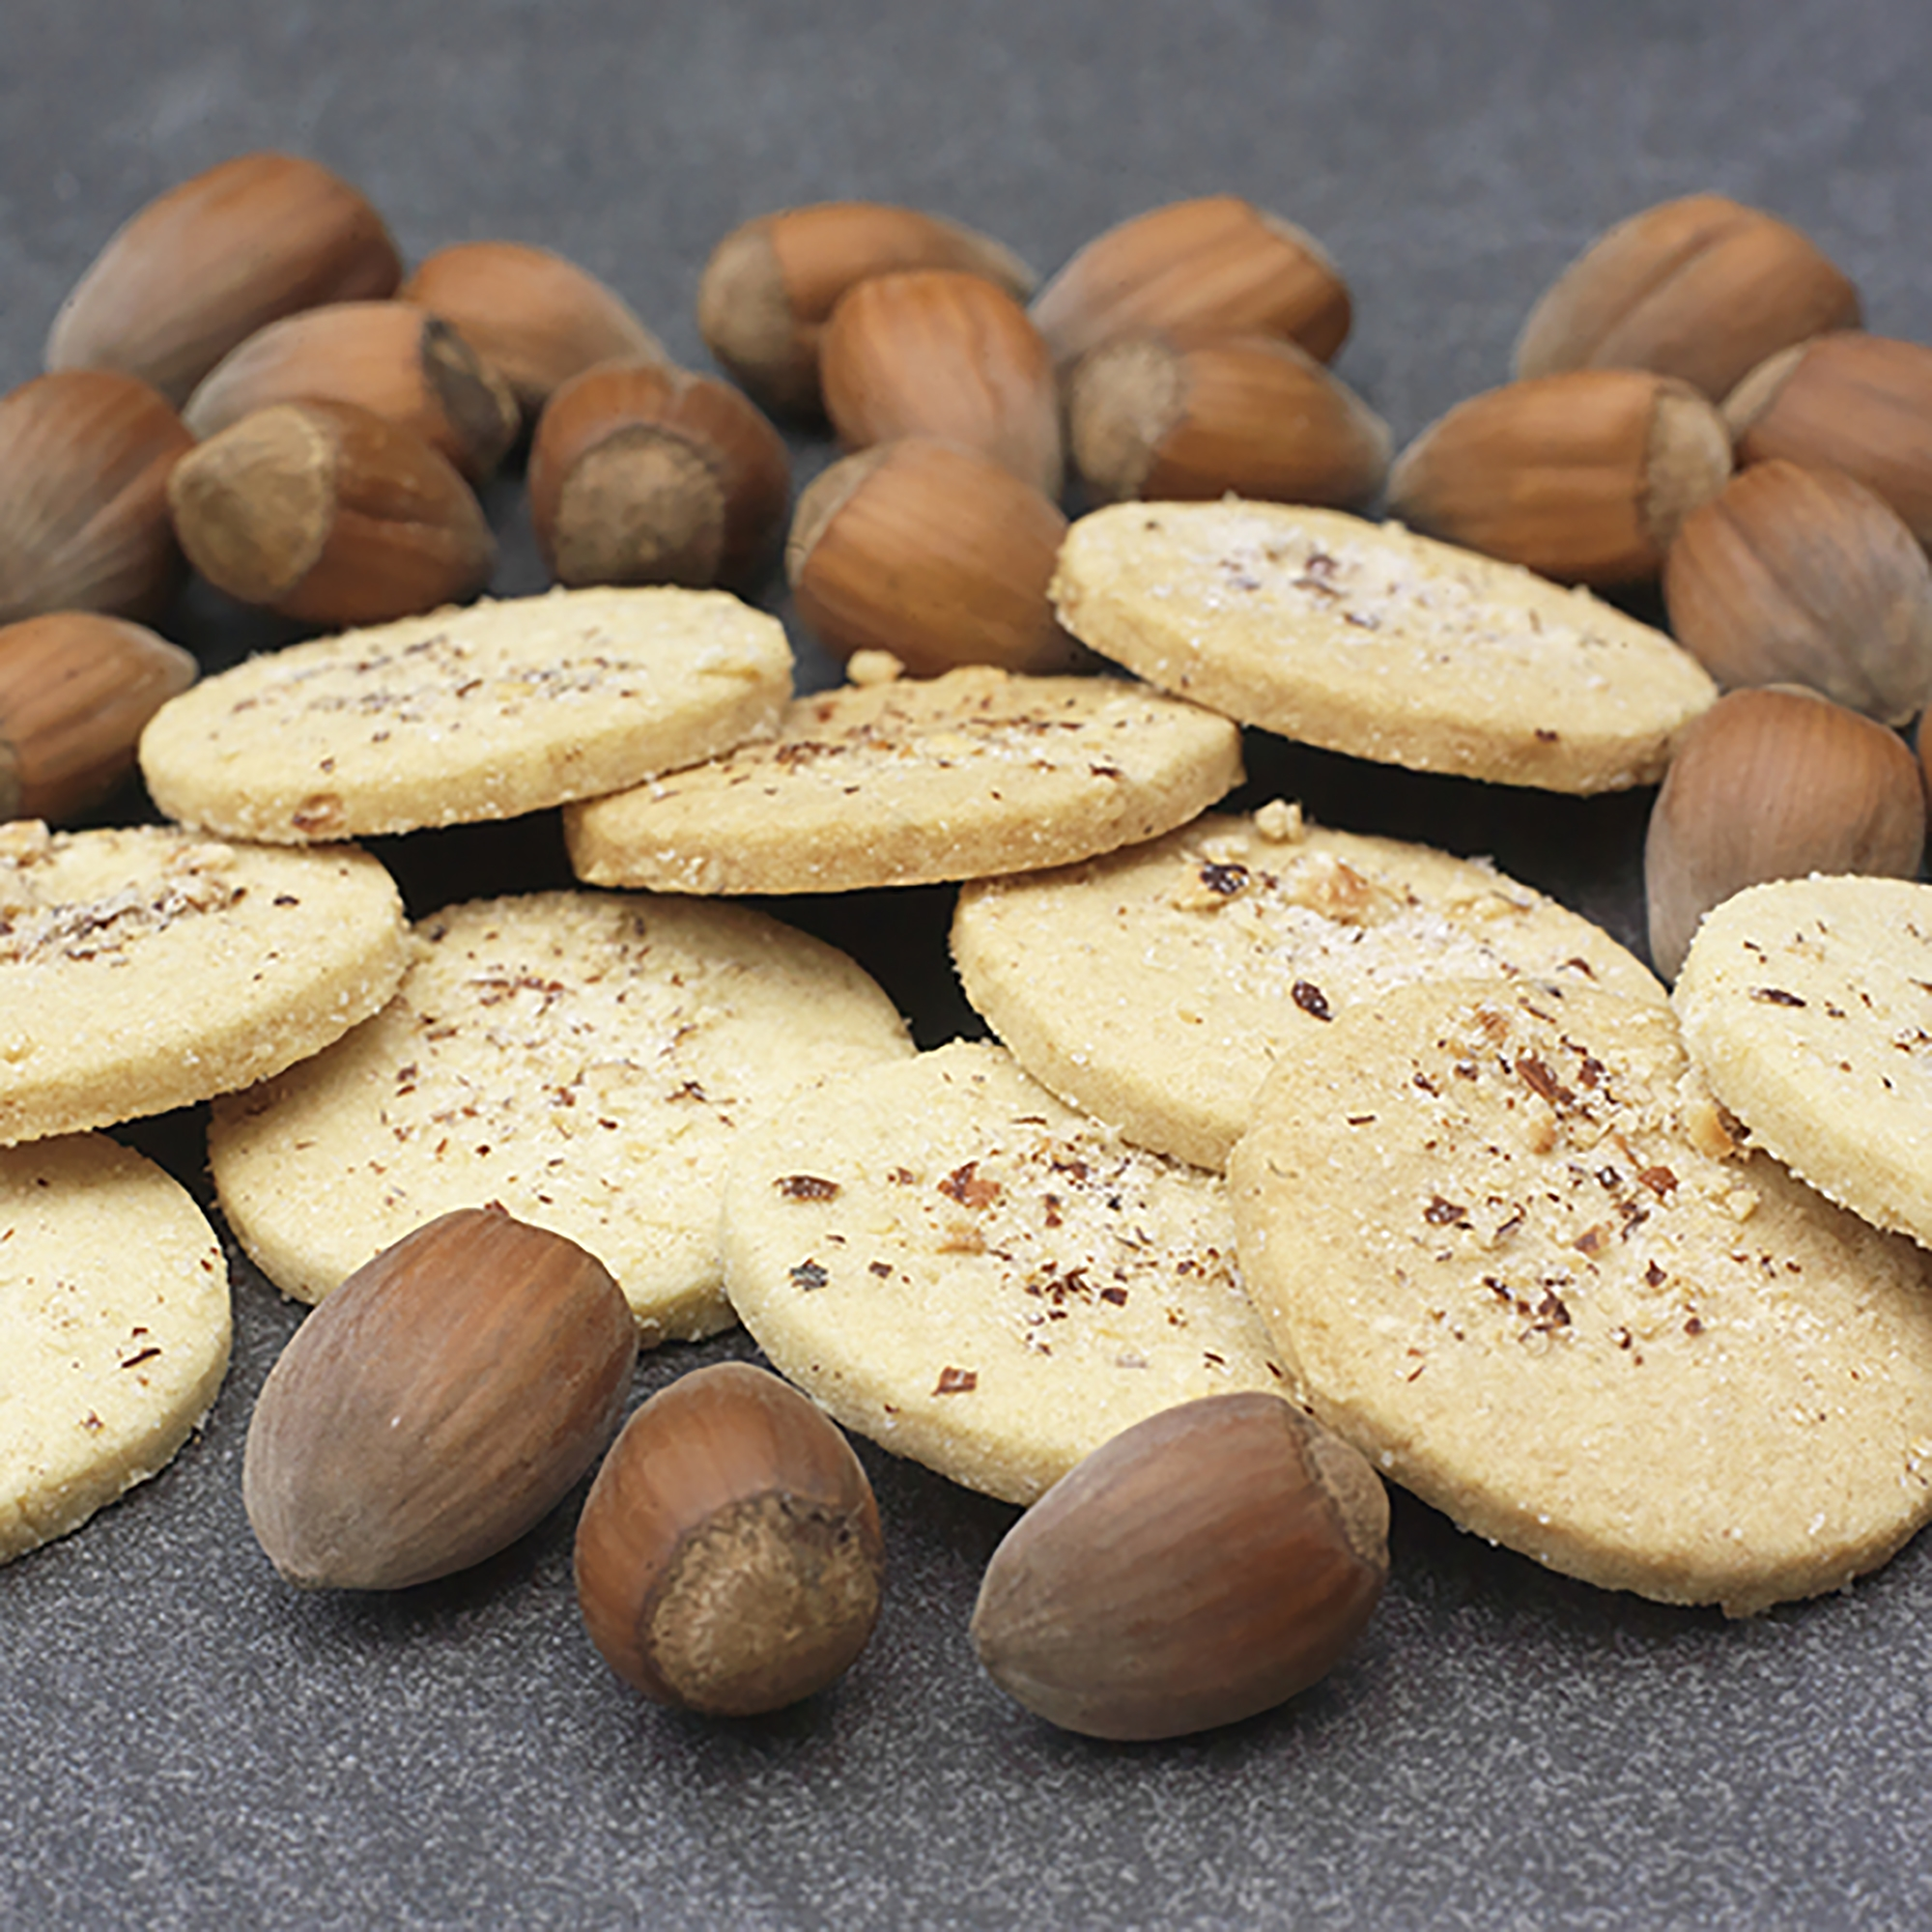 """Gregg Wallace, Telegraph Magazine - """"Cobnuts are a type of hazelnut that, once dried, have a lovely sweet flavour... and they taste superb in this lovely, buttery Handmade Kentish Cobnut Shortbread from Potash Farm in Kent"""""""